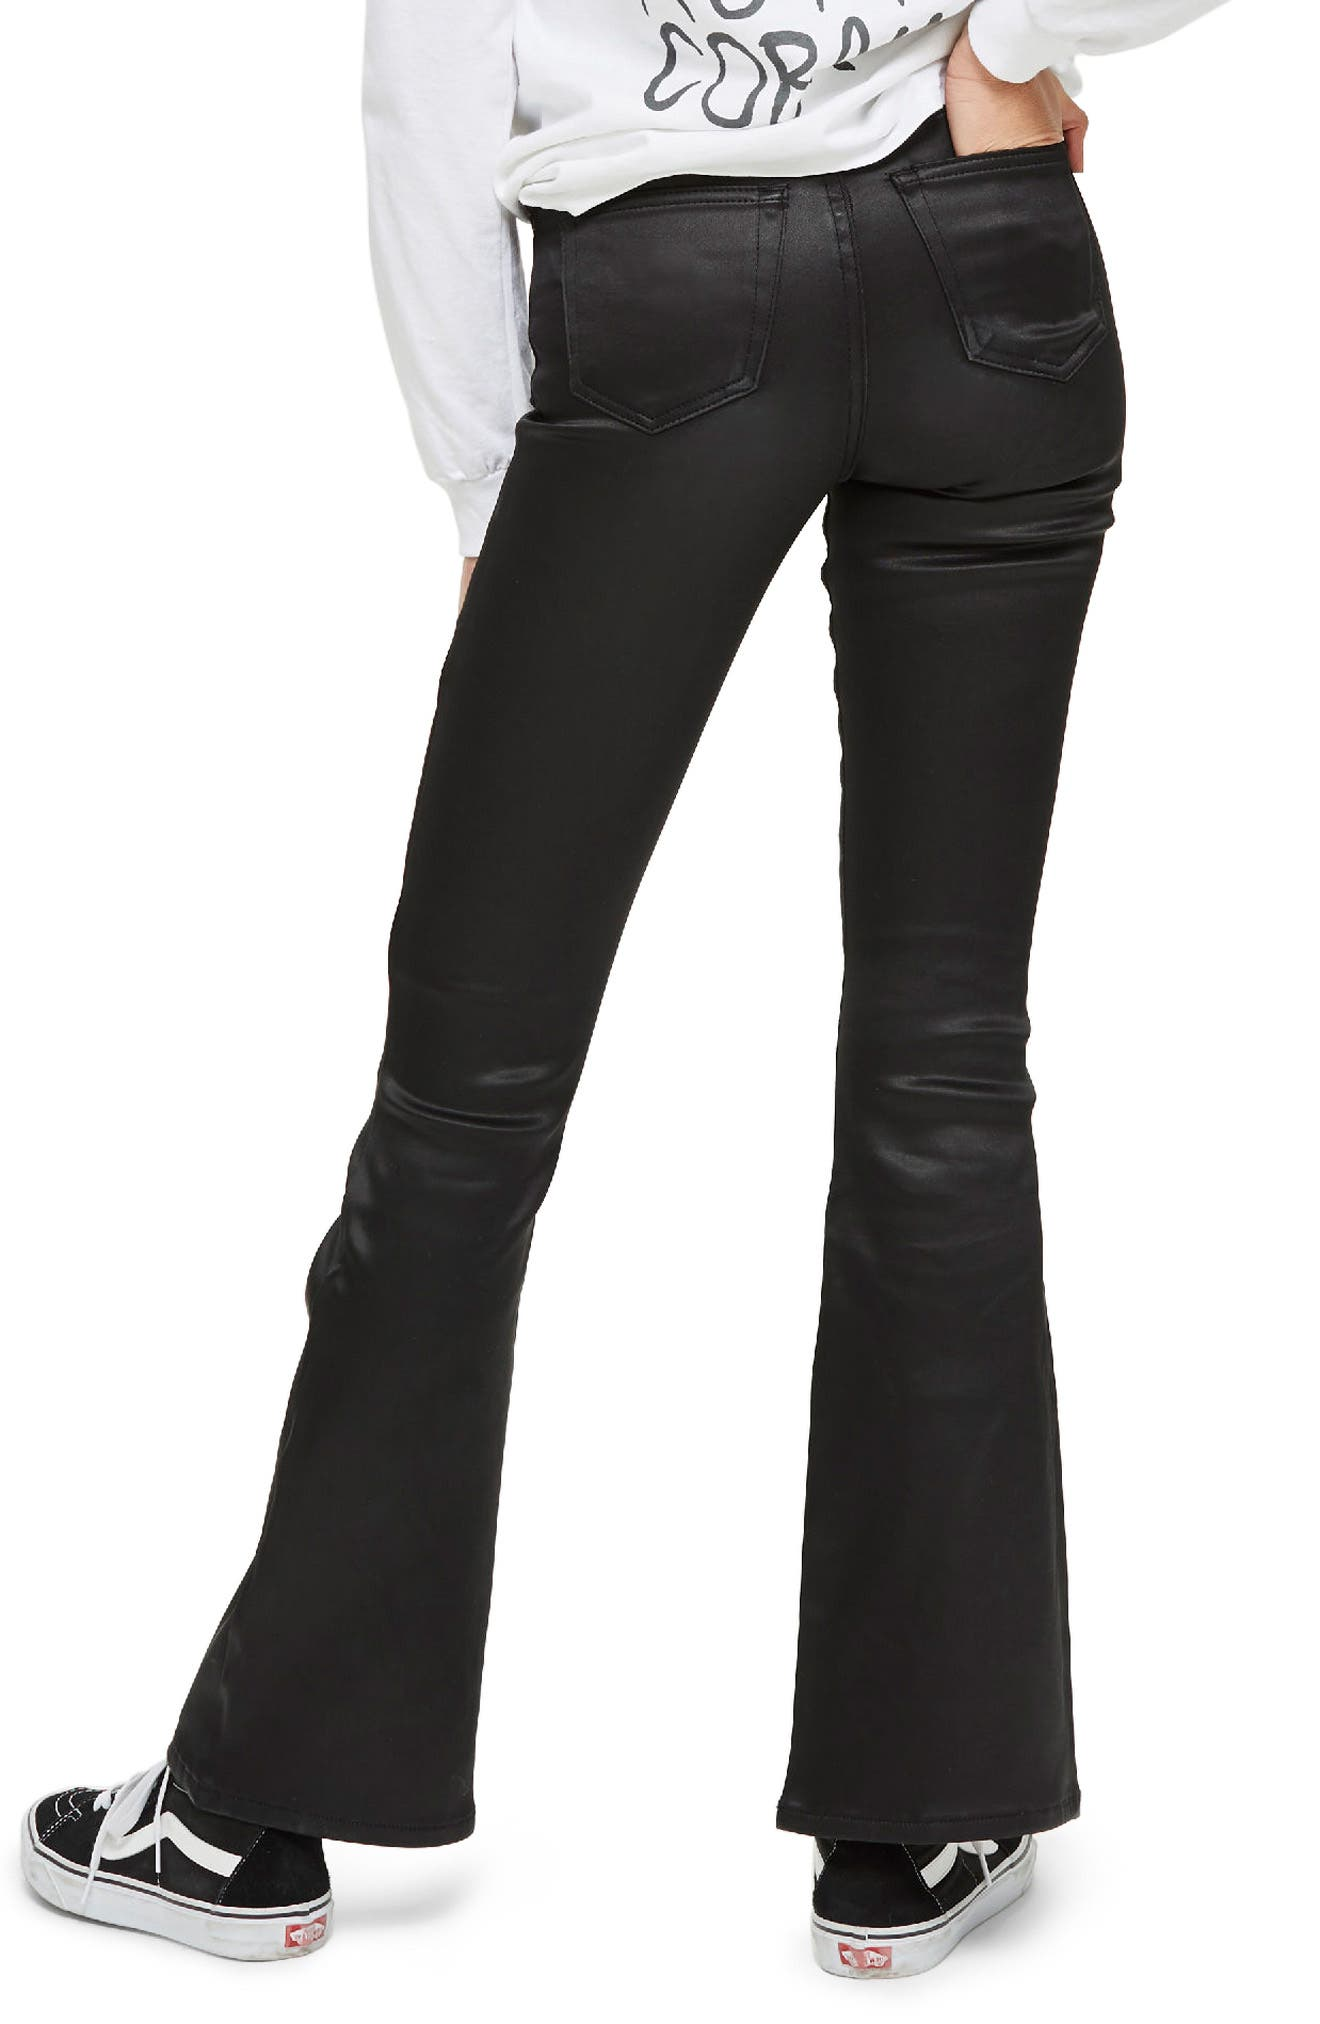 Jamie Sateen Flare Jeans,                             Alternate thumbnail 3, color,                             Black